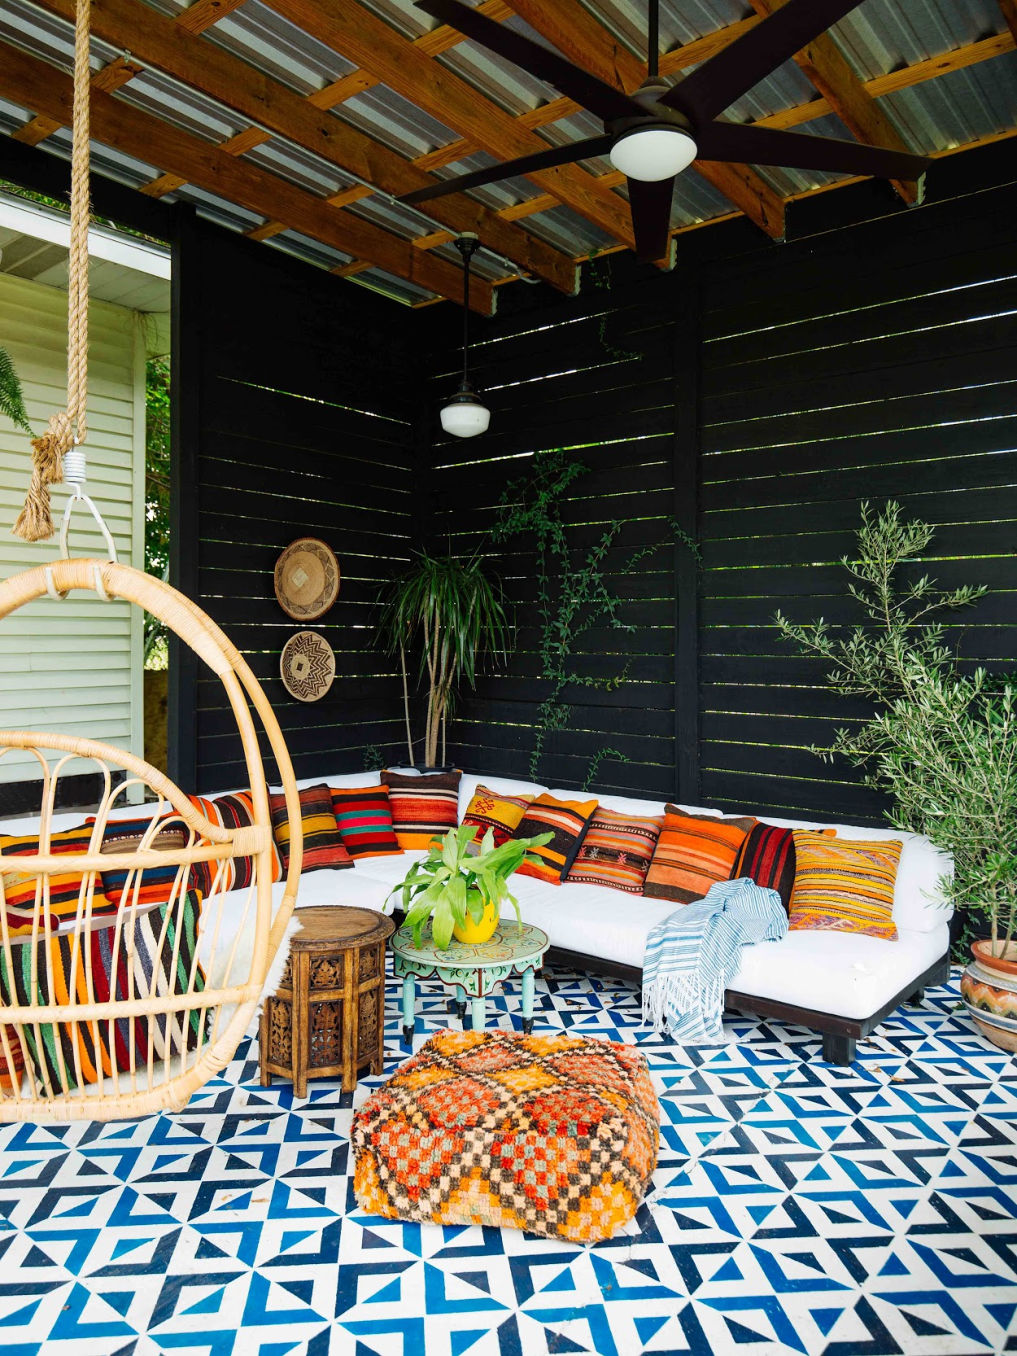 Love this colorful patio with stenciled concrete and colorful pillows #patio #patiodecor #patiofurniture #bohodecor #eclecticdecor